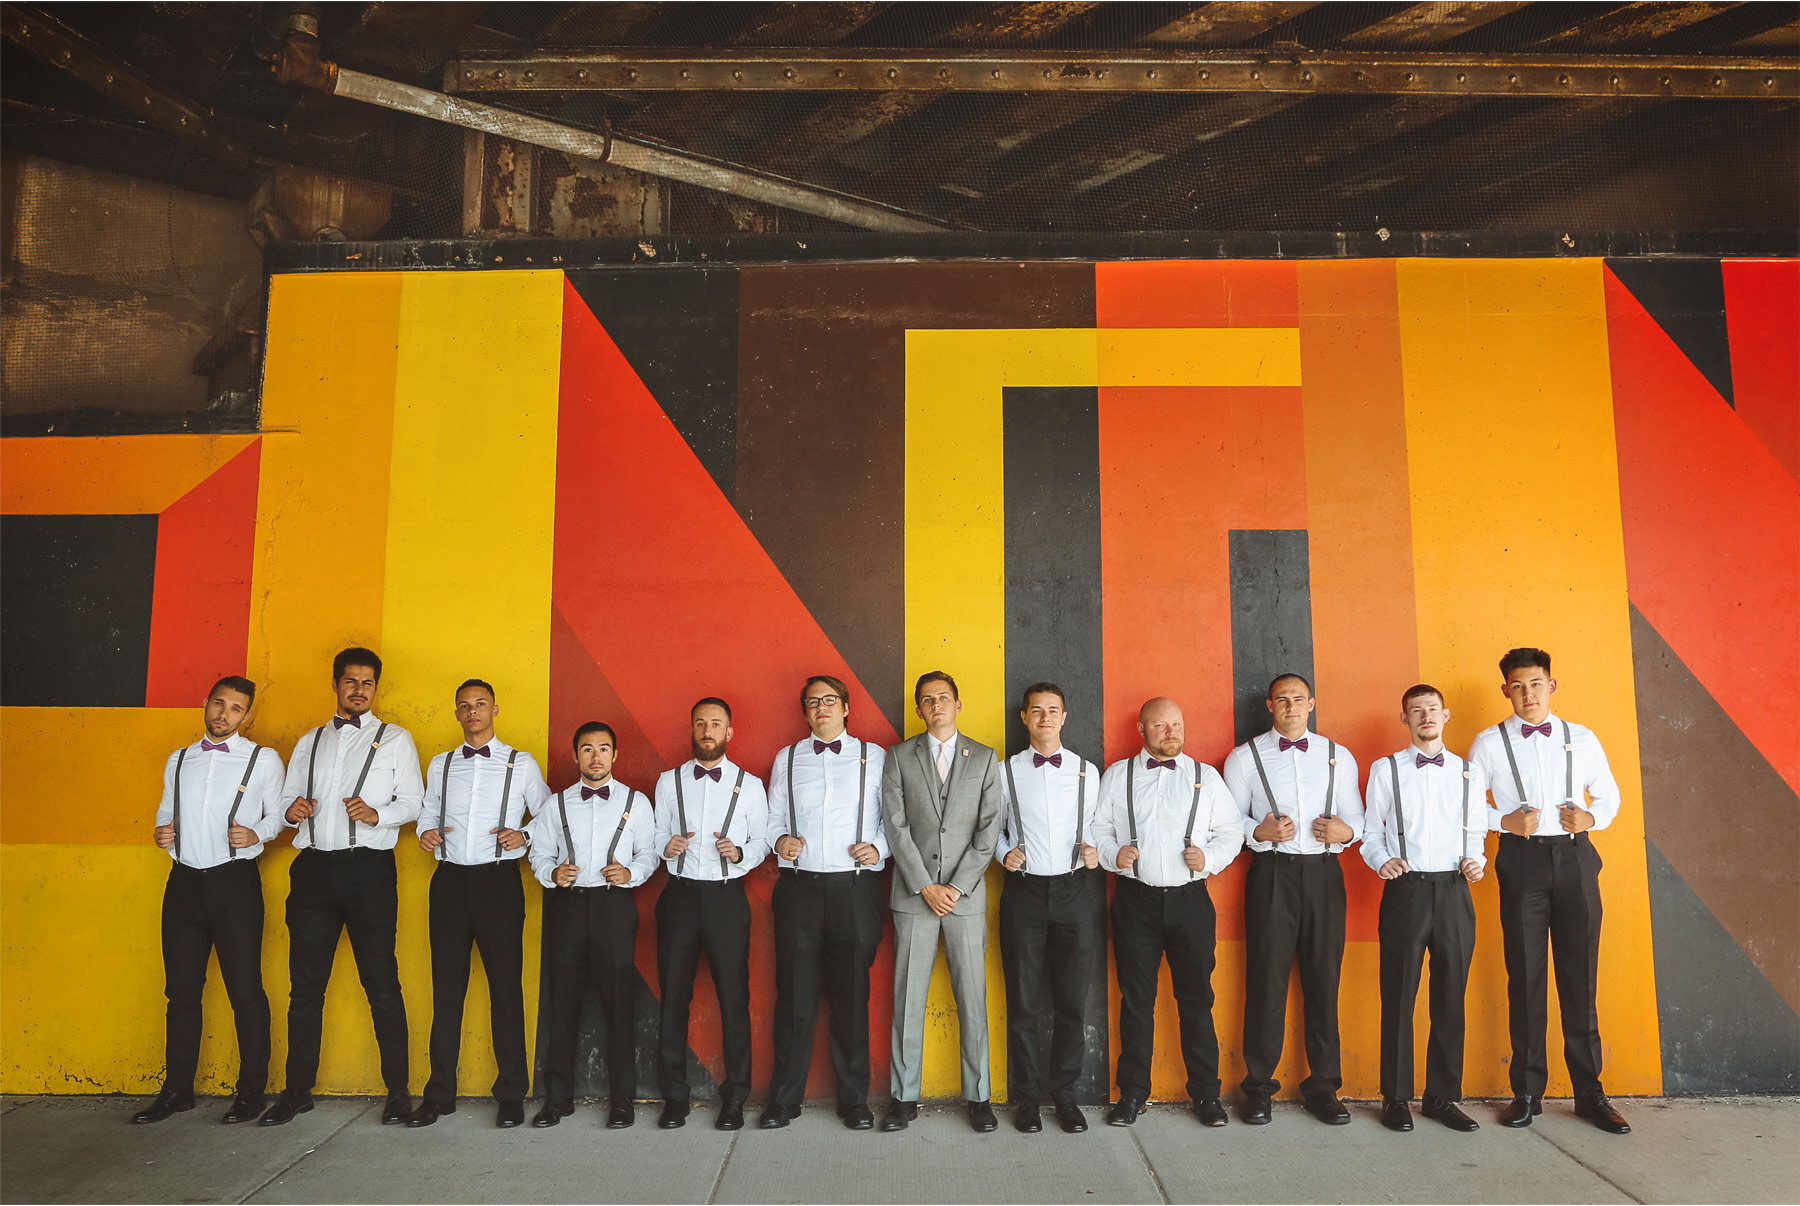 07-Wedding-by-Andrew-Vick-Photography-Chicago-Illinois-Groom-Groomsmen-Downtown-Graffiti-Ashley-and-Nicholas.jpg